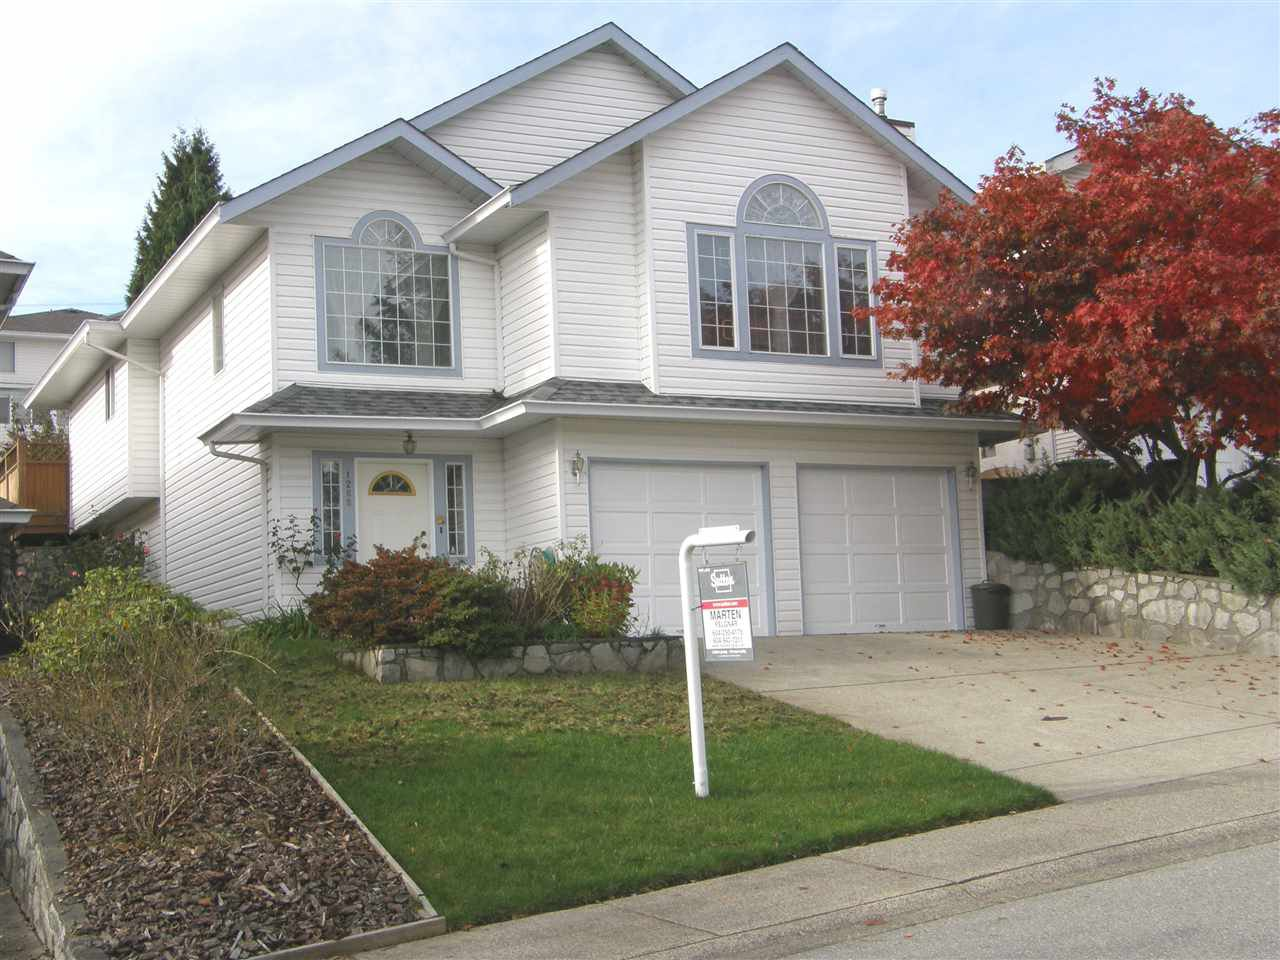 Main Photo: 1268 MICHIGAN Drive in Coquitlam: Canyon Springs House for sale : MLS®# R2110754